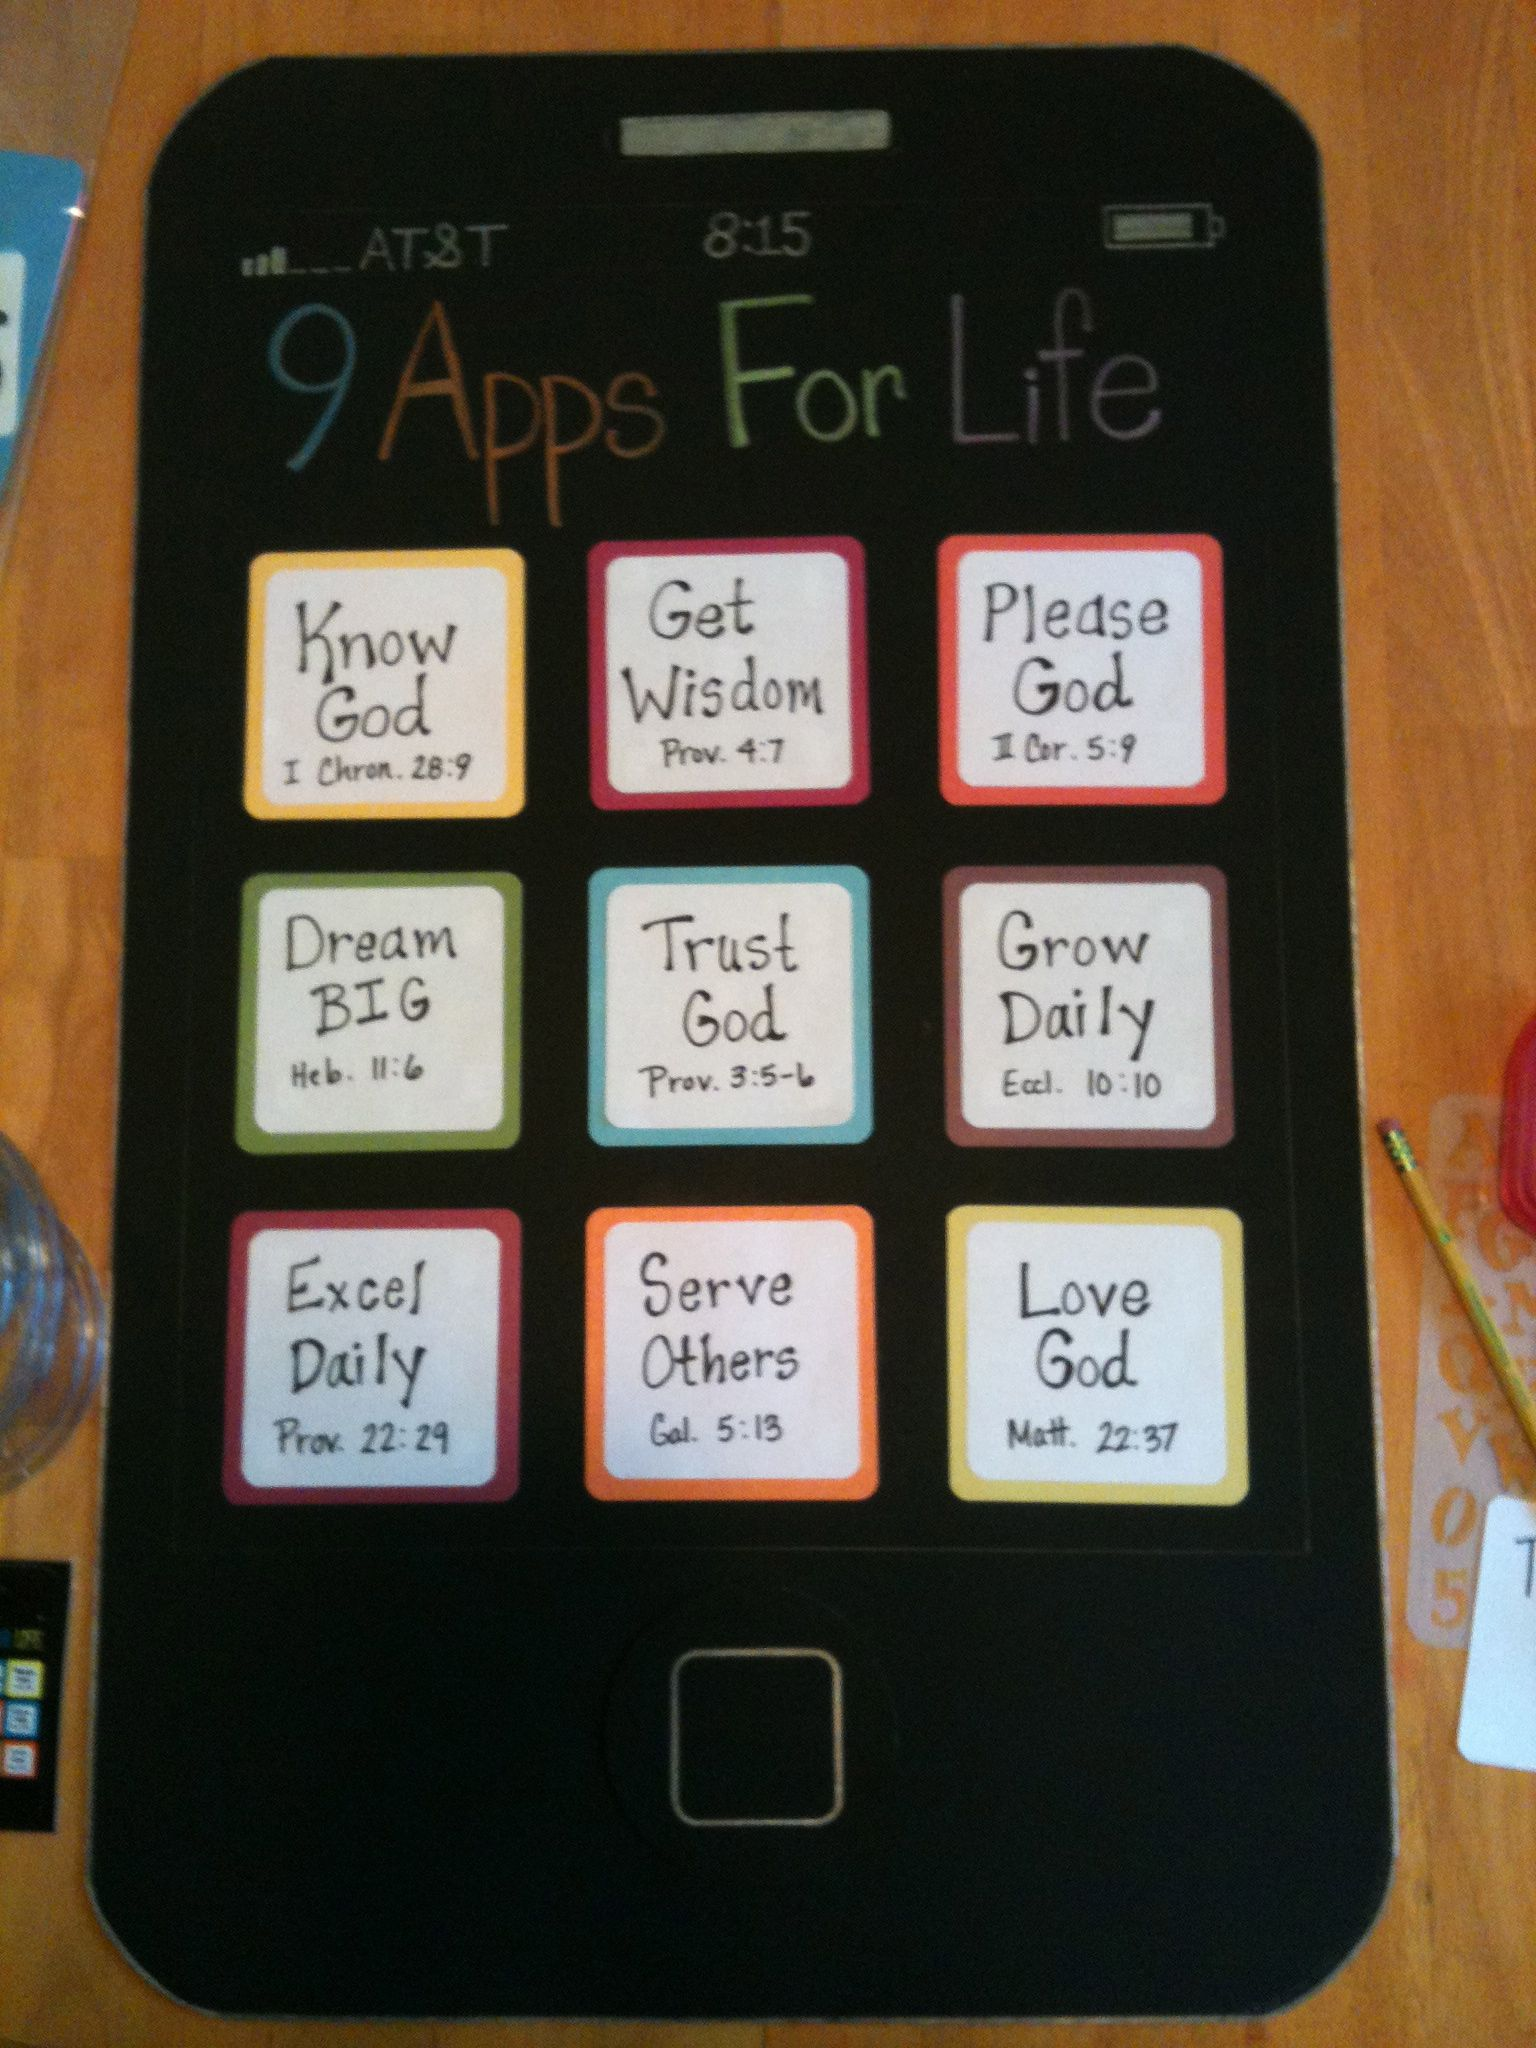 She Made This Iphone Out Of Black Poster Board For Her Bible Class